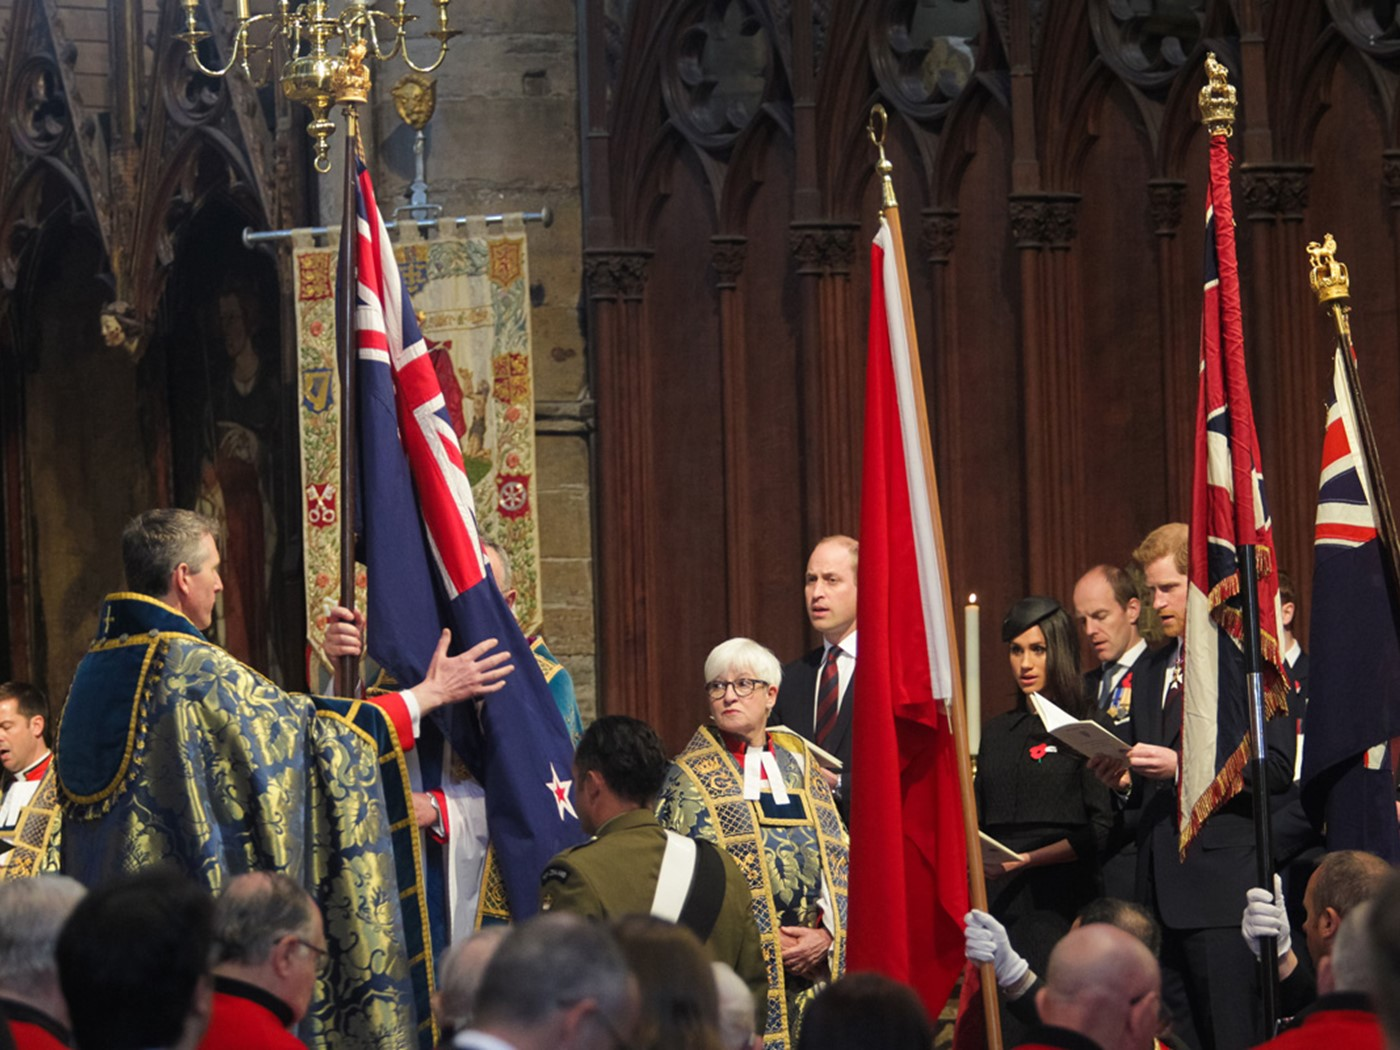 Flags were borne through the Abbey Church and placed in the Sacrarium